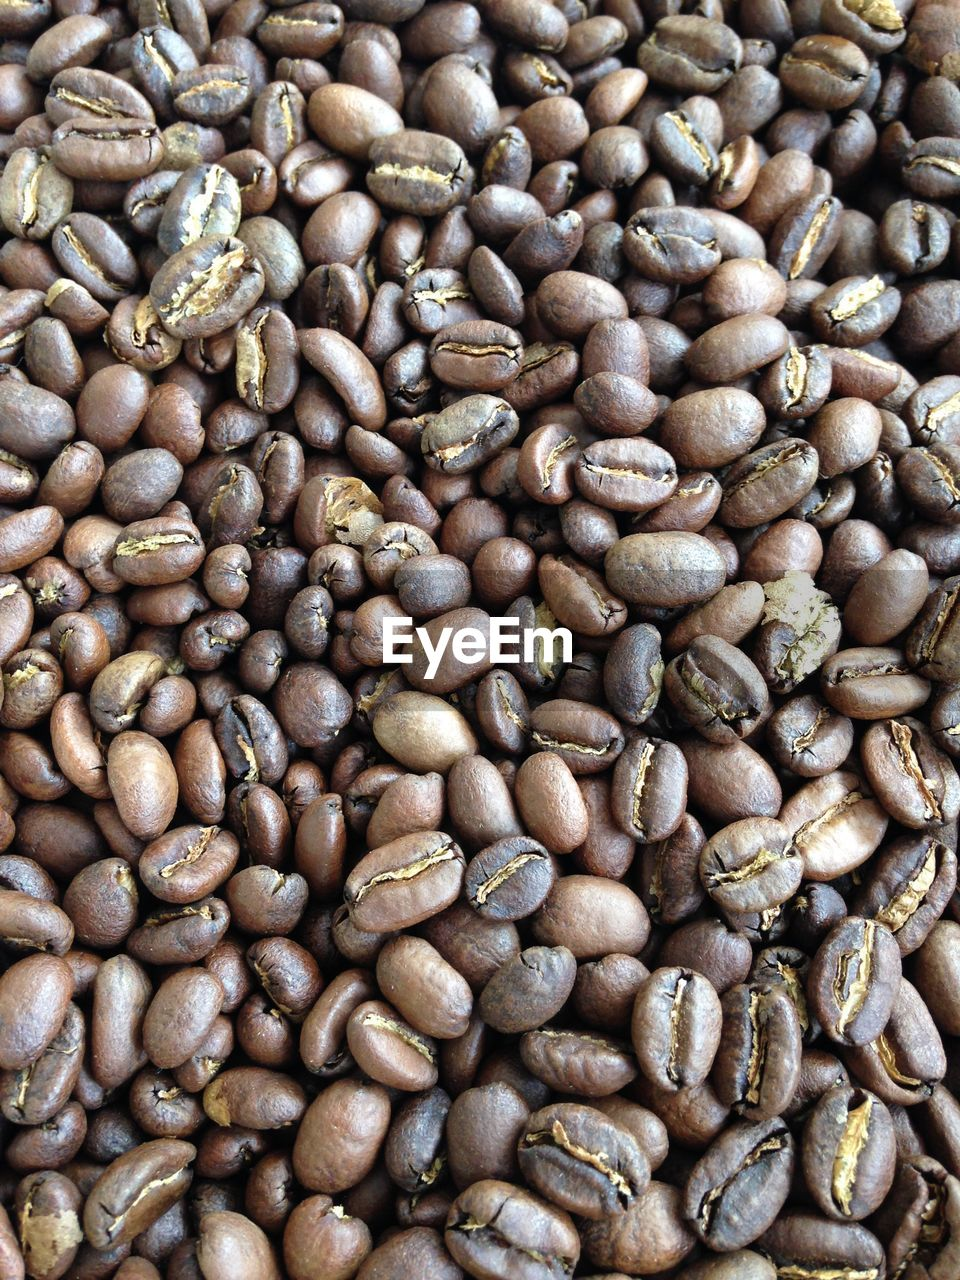 food and drink, roasted coffee bean, coffee bean, abundance, coffee - drink, brown, raw coffee bean, full frame, roasted, large group of objects, freshness, no people, food, nature, backgrounds, close-up, indoors, day